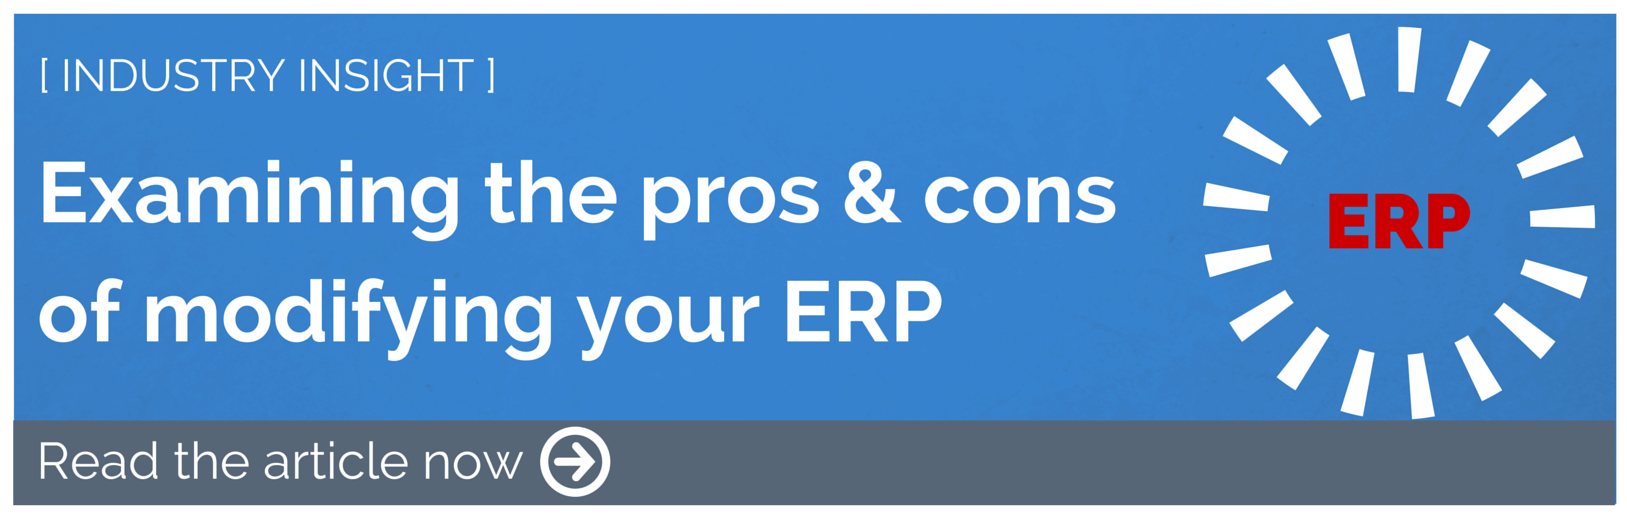 ERP_Pros_Cons Article